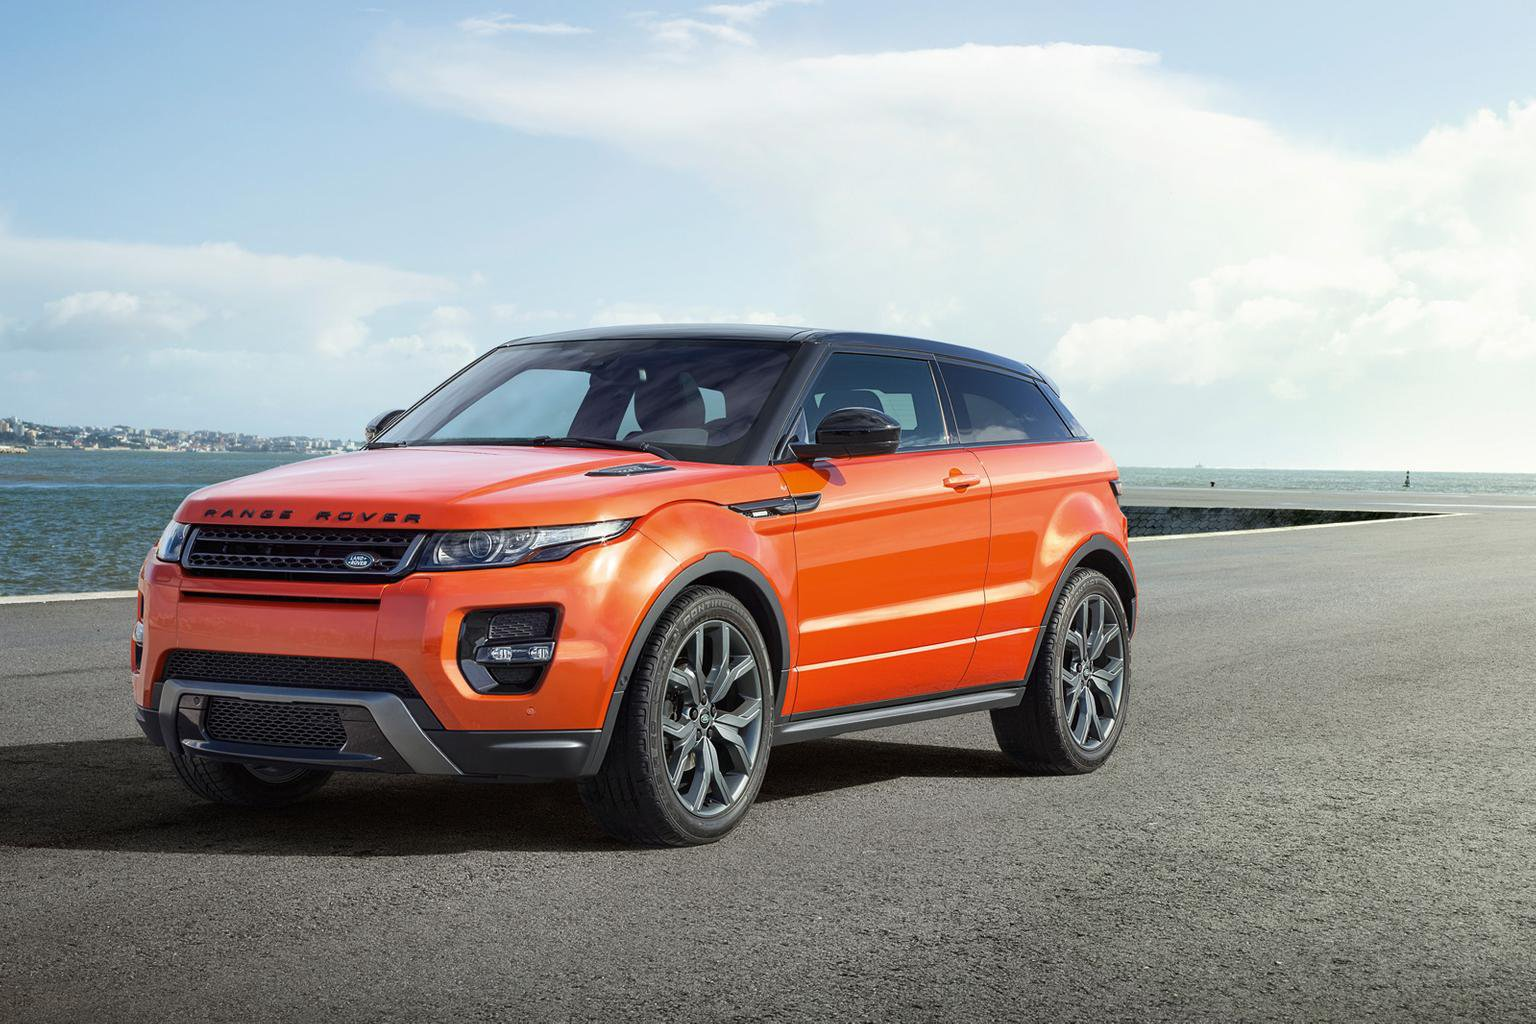 Most powerful Range Rover Evoque shown at Geneva